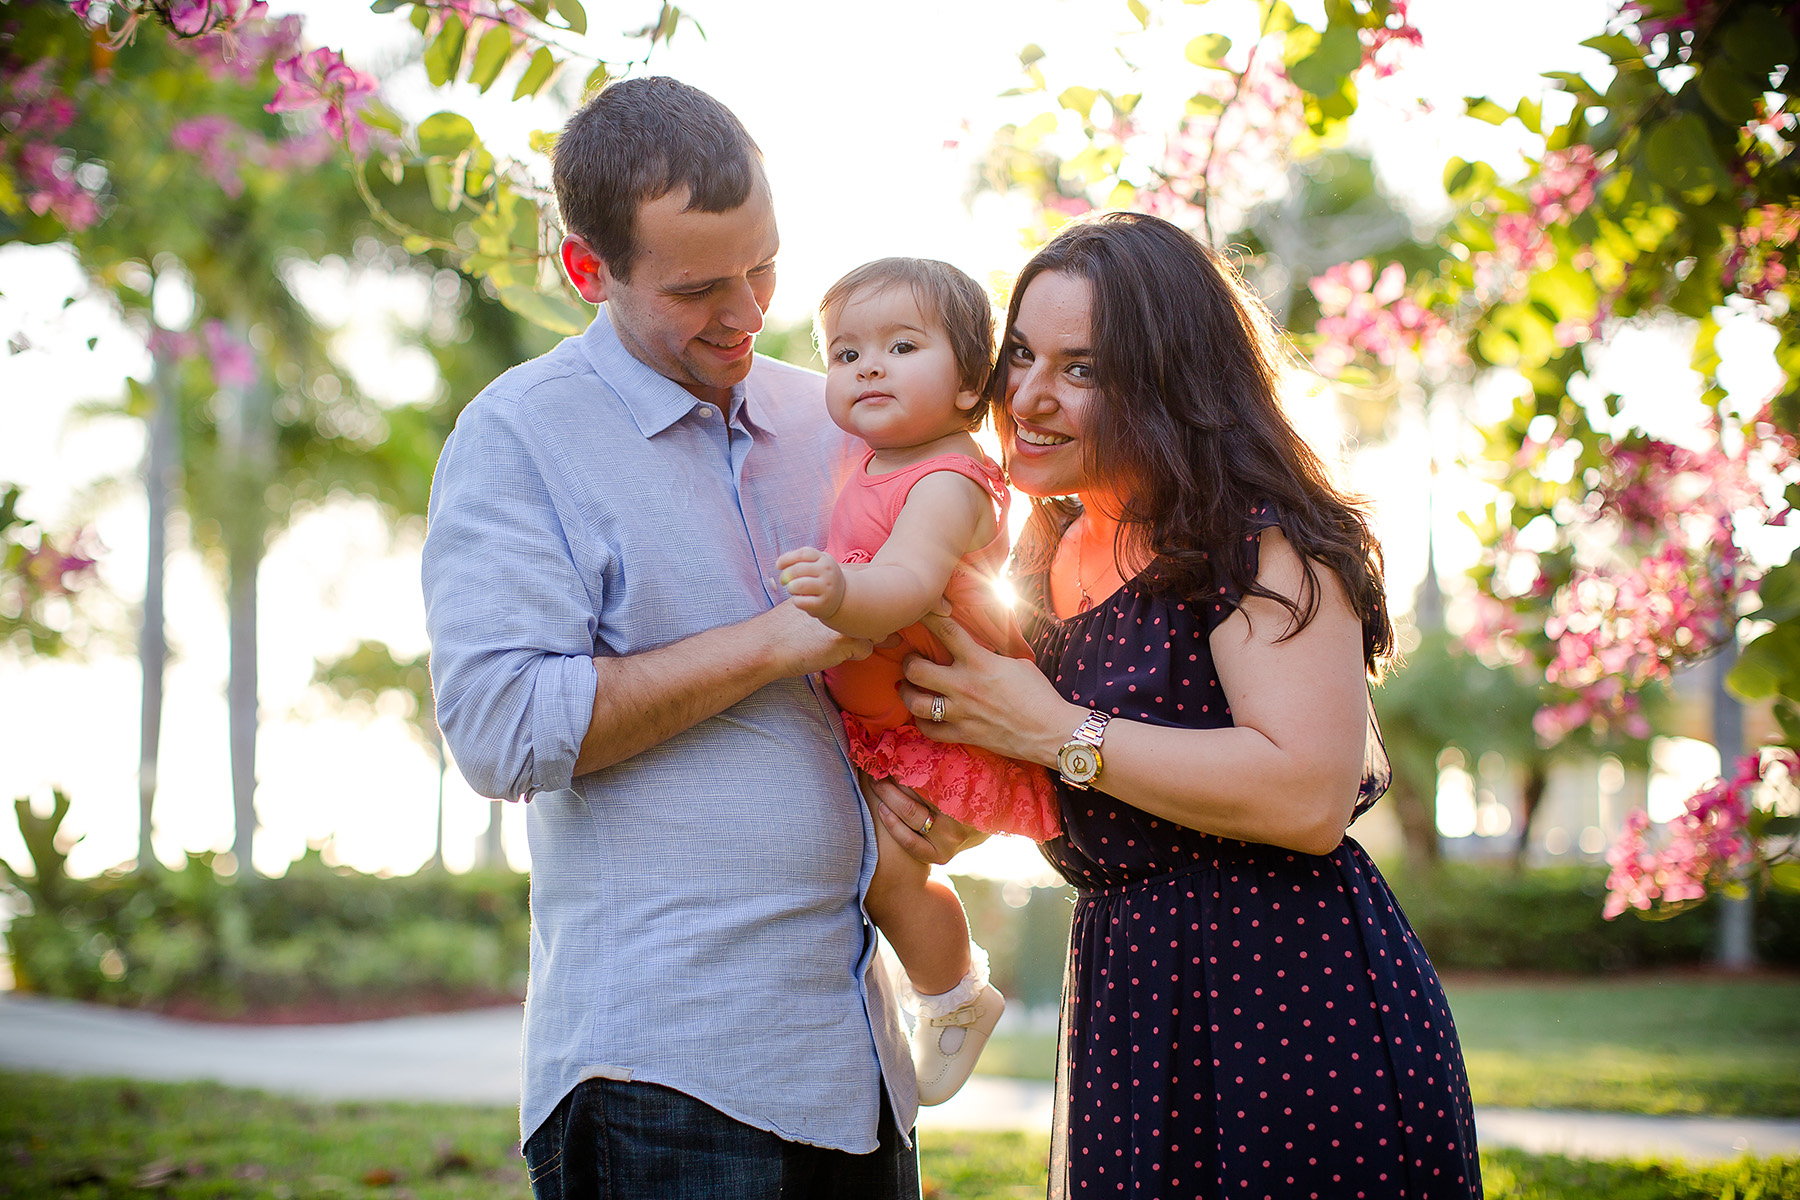 wilton-manors-family-photography-portraits-baby-parents-portraits.jpg